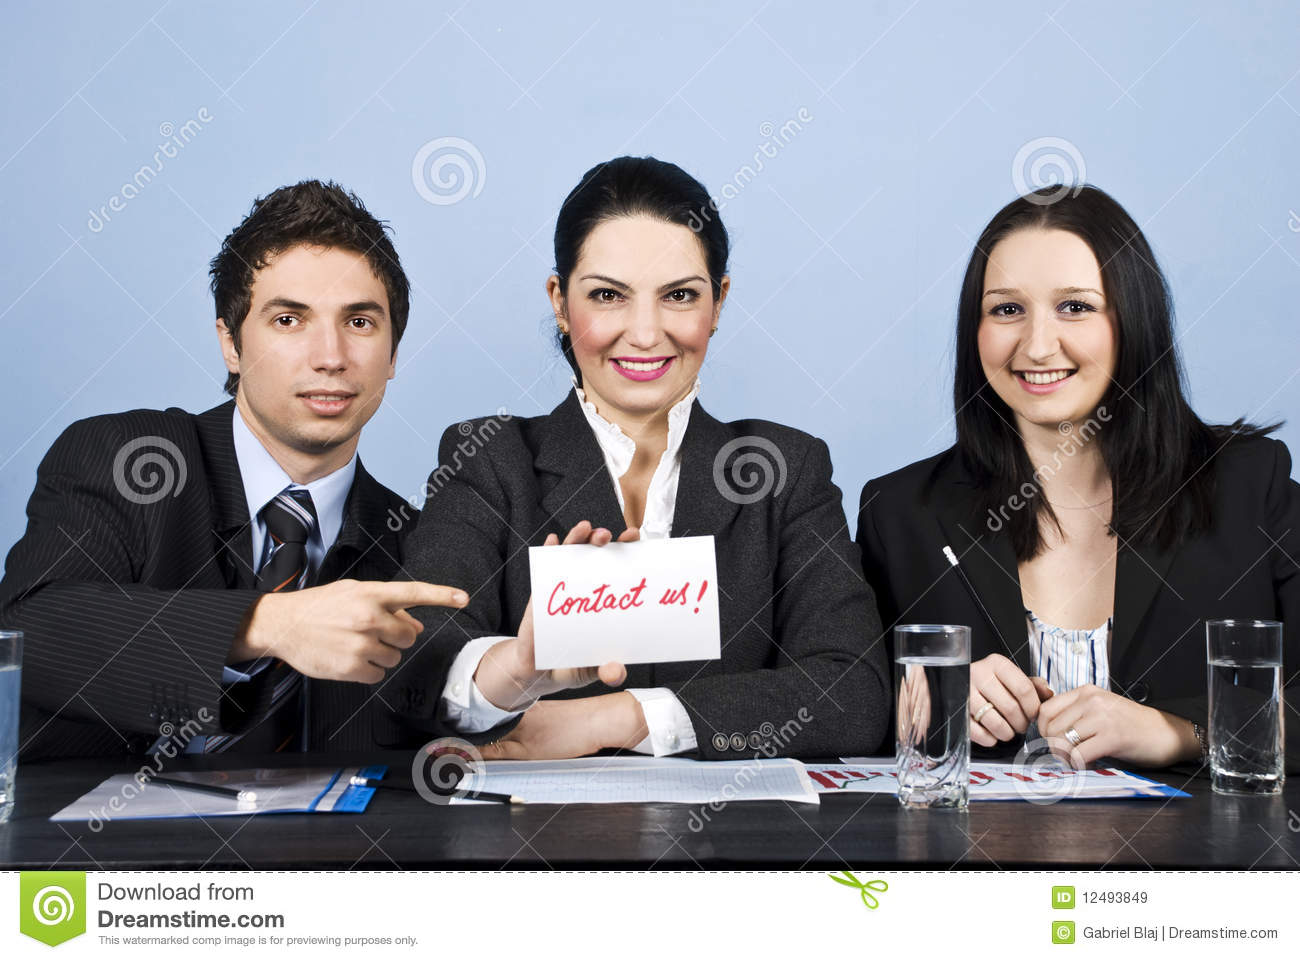 Download Business People Team With Contact Us Message Stock Image - Image of formalwear, cheerful: 12493849